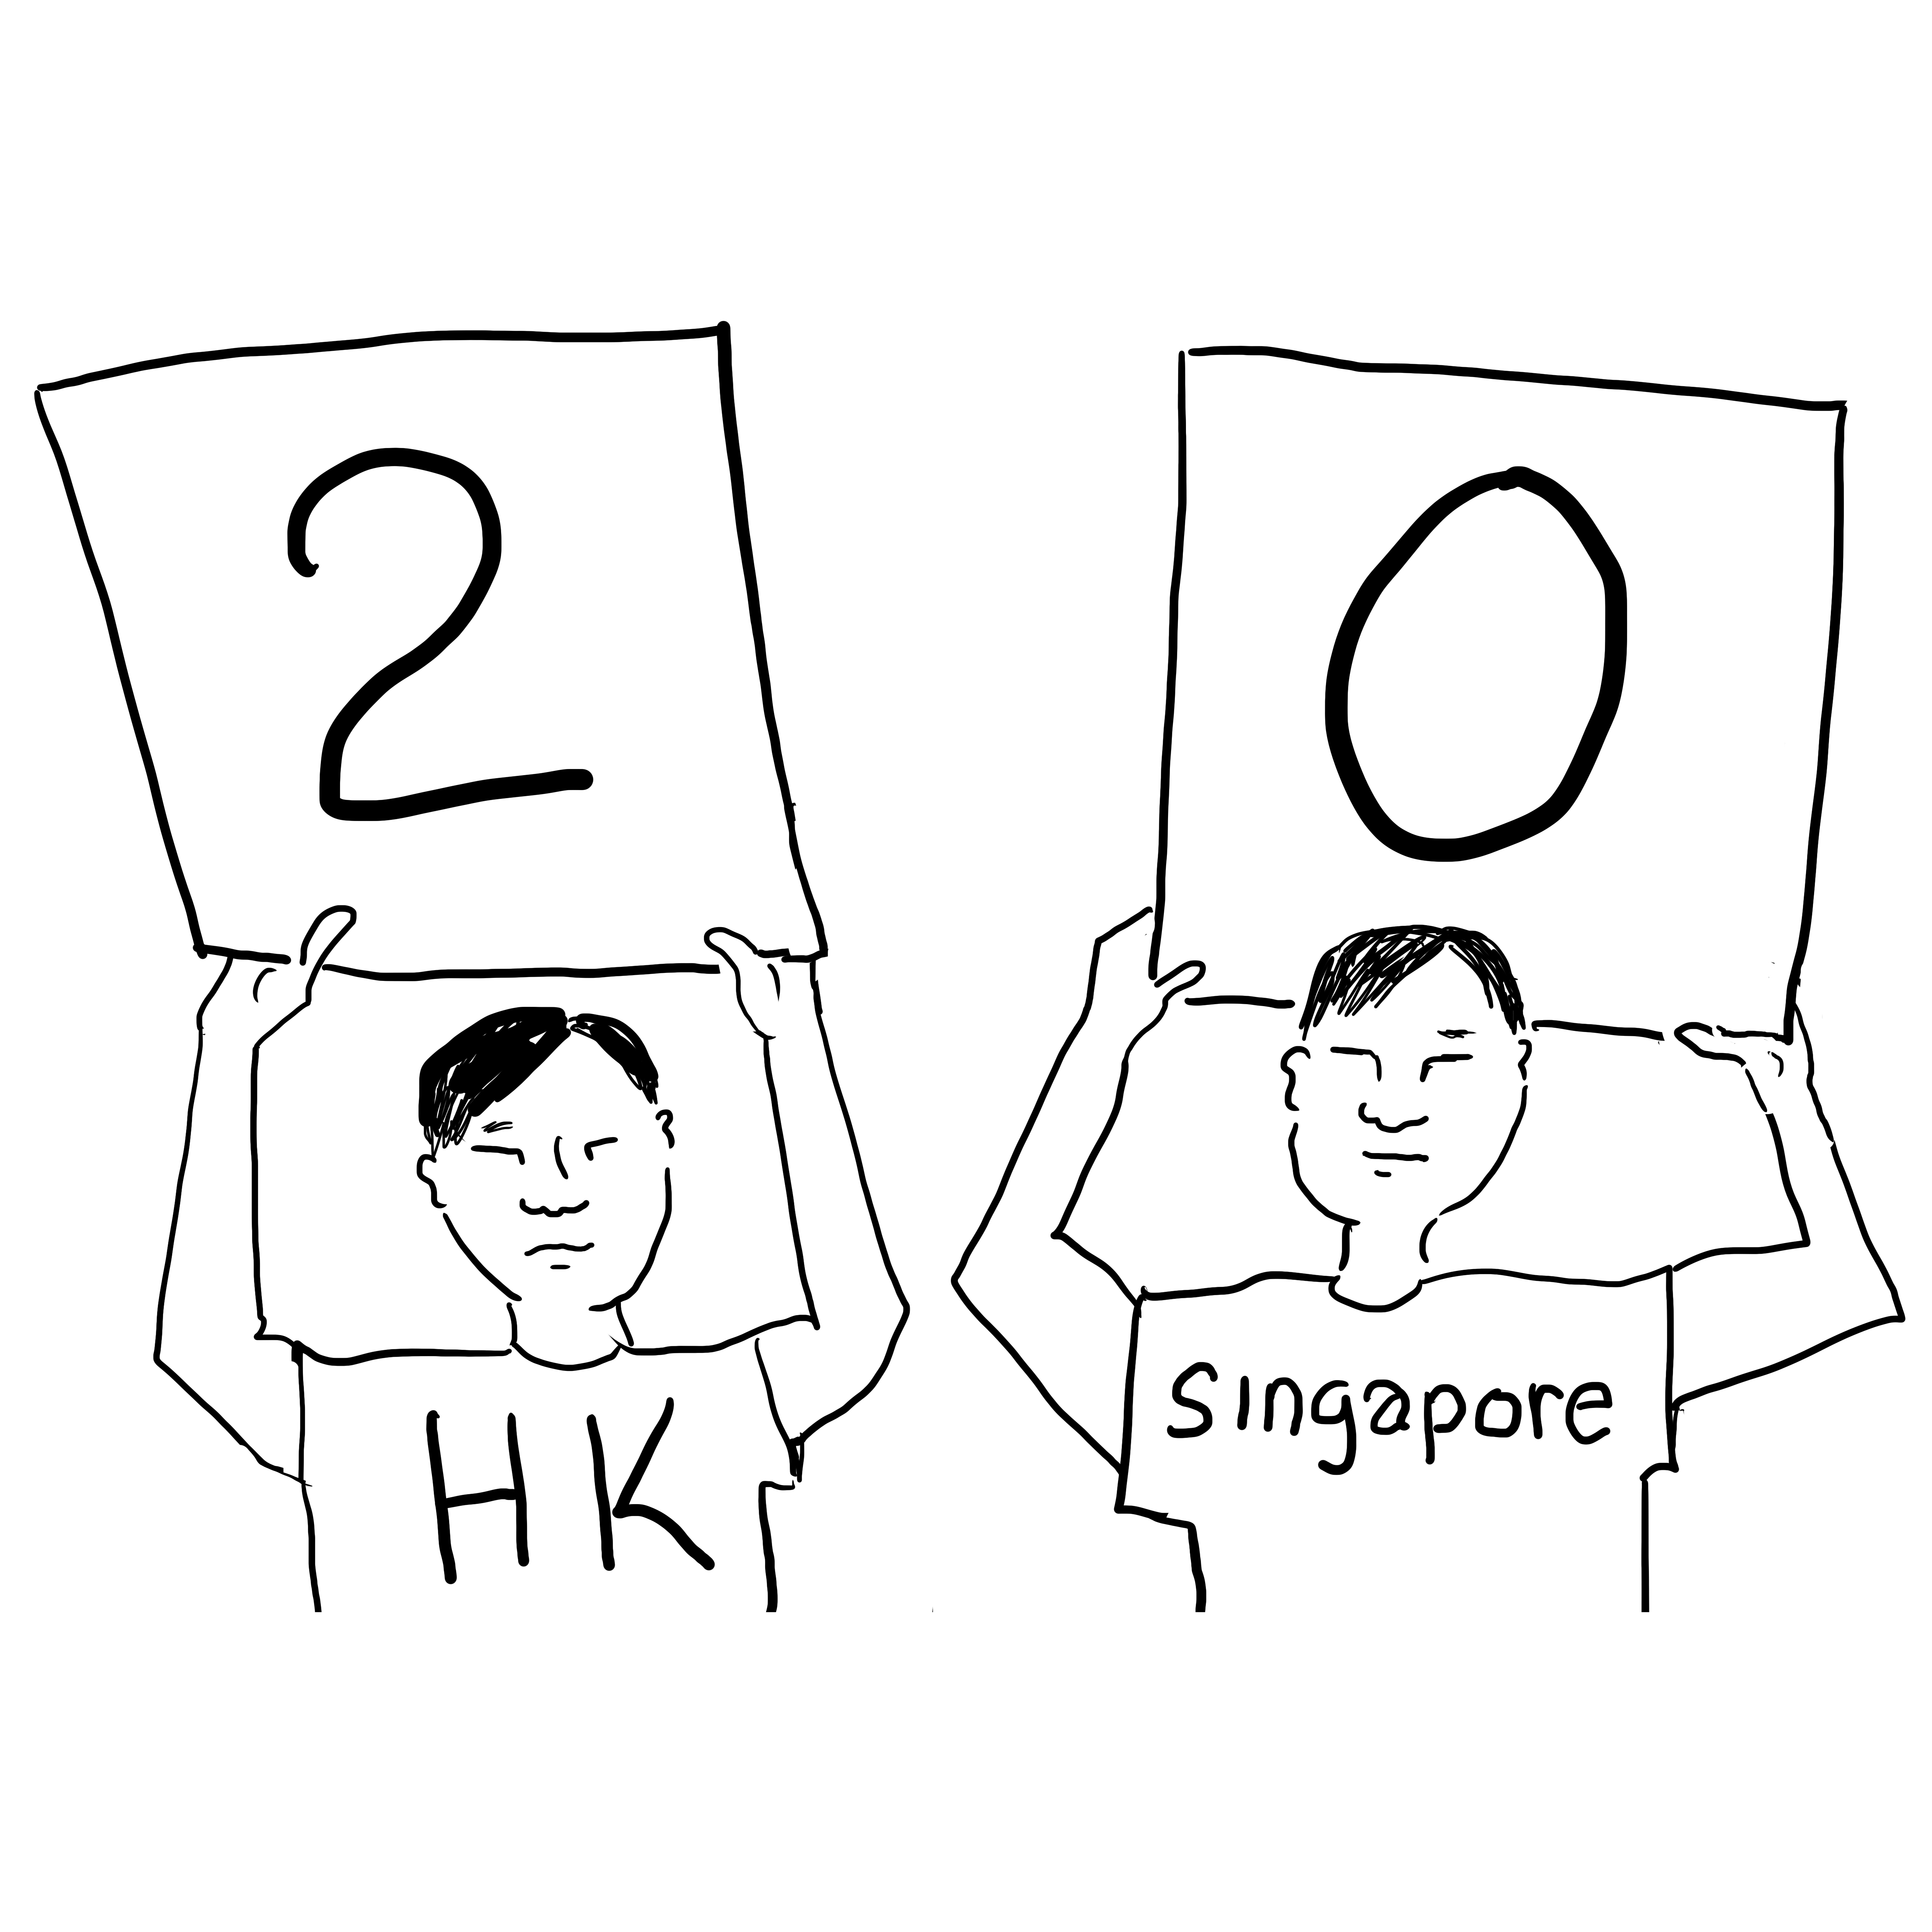 Hong Kong stretches lead